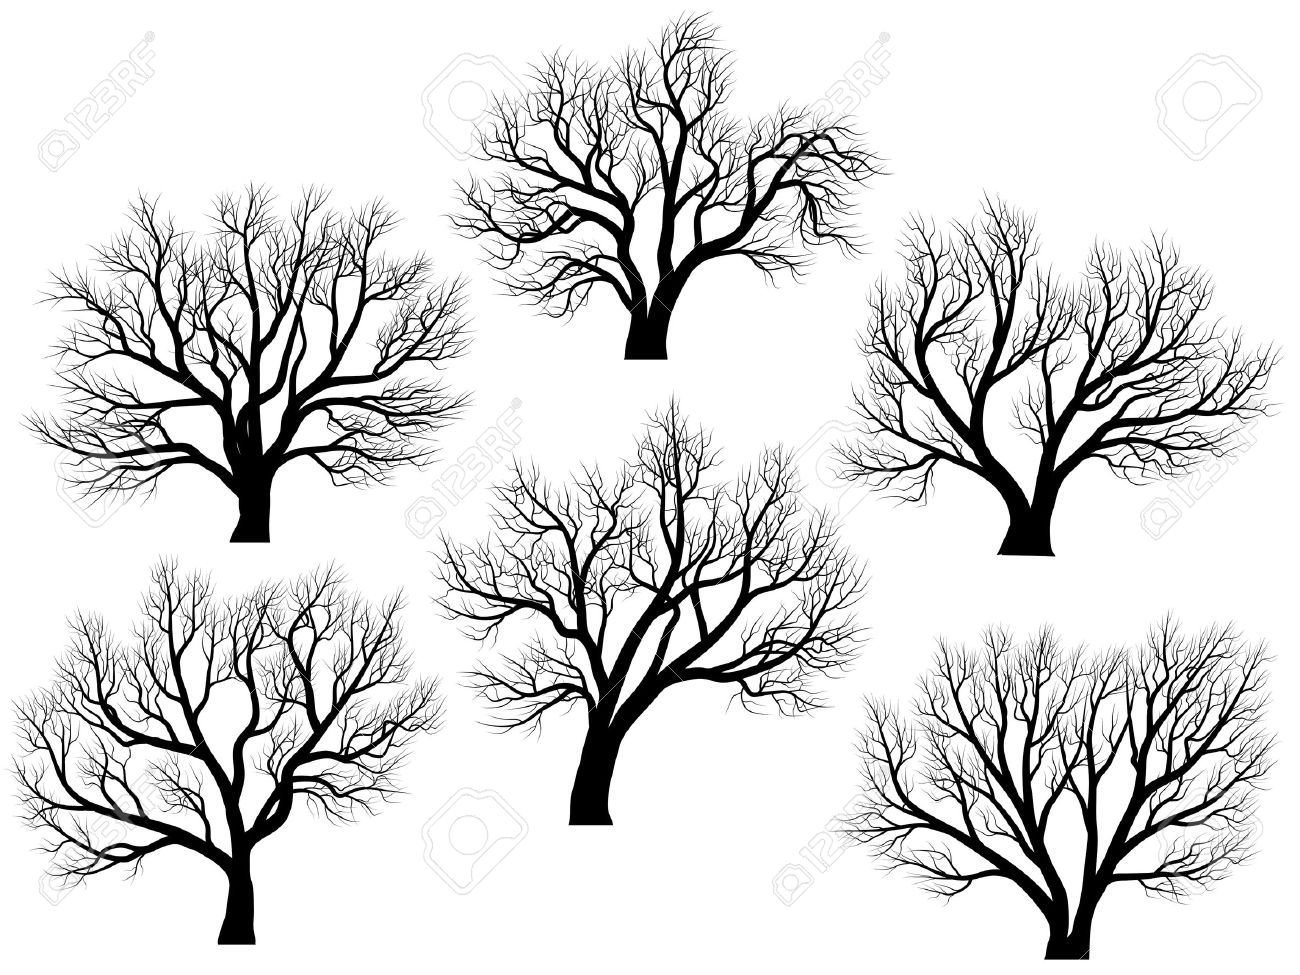 1300x975 Set Of Vector Silhouettes Of Deciduous Large Trees Without Leaves